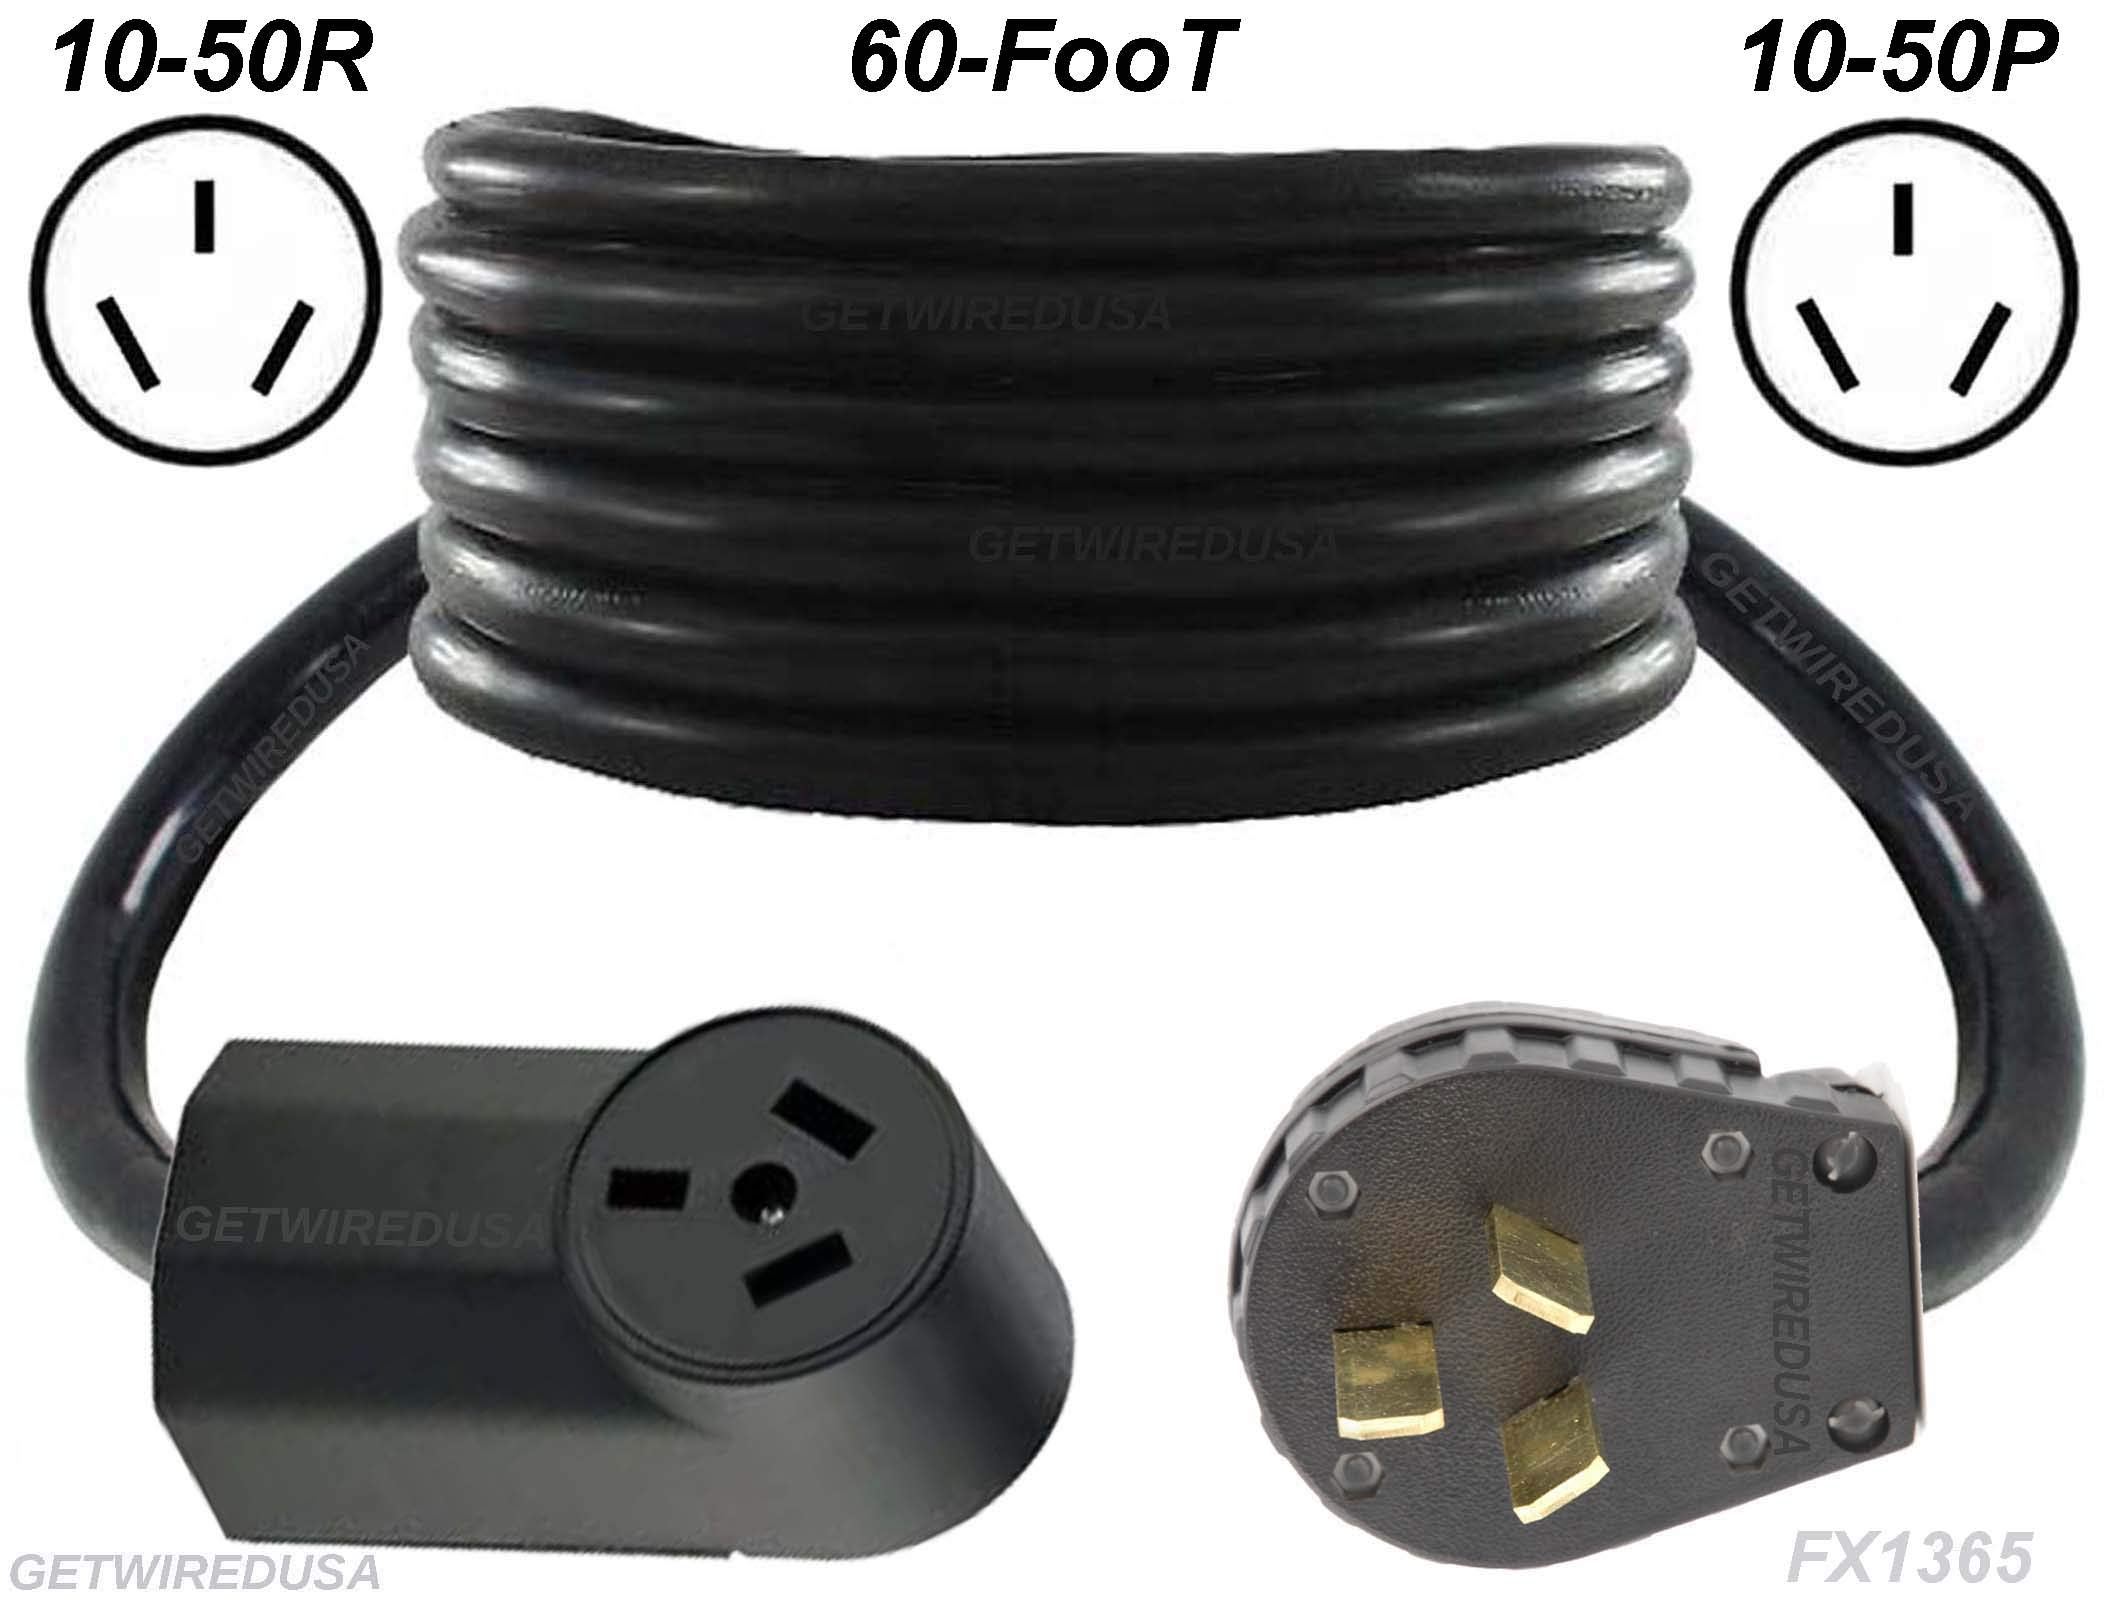 Range, Oven, Stove, 60-FT Extension Cord 10-50P Male 3-Pin Plug To 10-50R Female Receptacle, Heavy Duty, Real Copper Wire, 10/3 10AWG 10-Gauge, NEMA, 60-Feet Long, Made In American, FX1365-R by getwiredusa